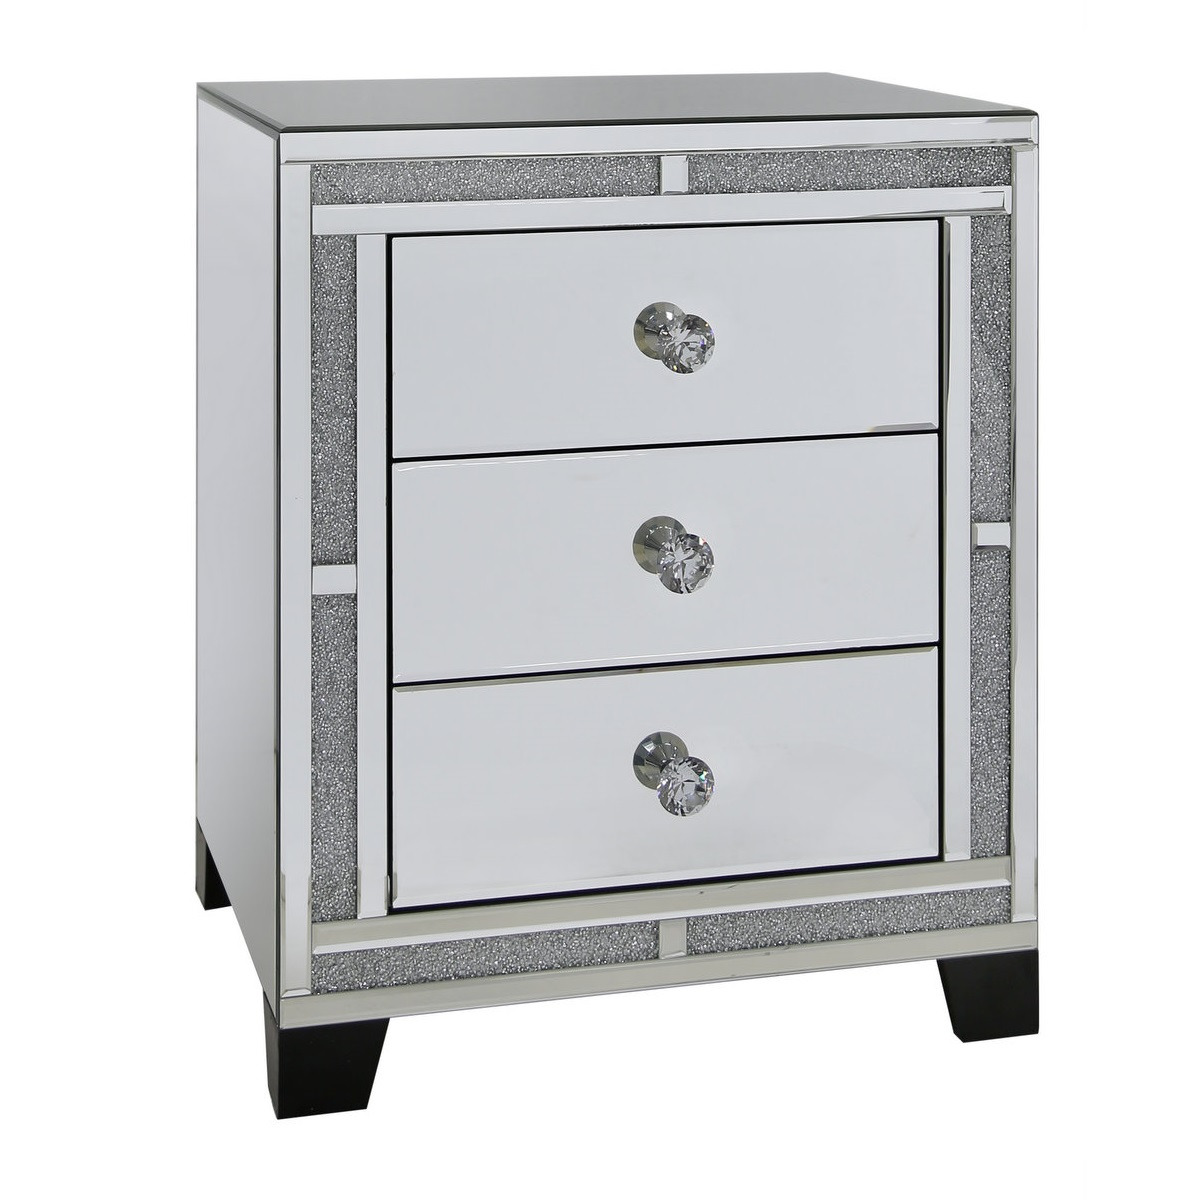 Tuscany mirrored 3 drawer bedside table with swarovski for Mirror bedside cabinets